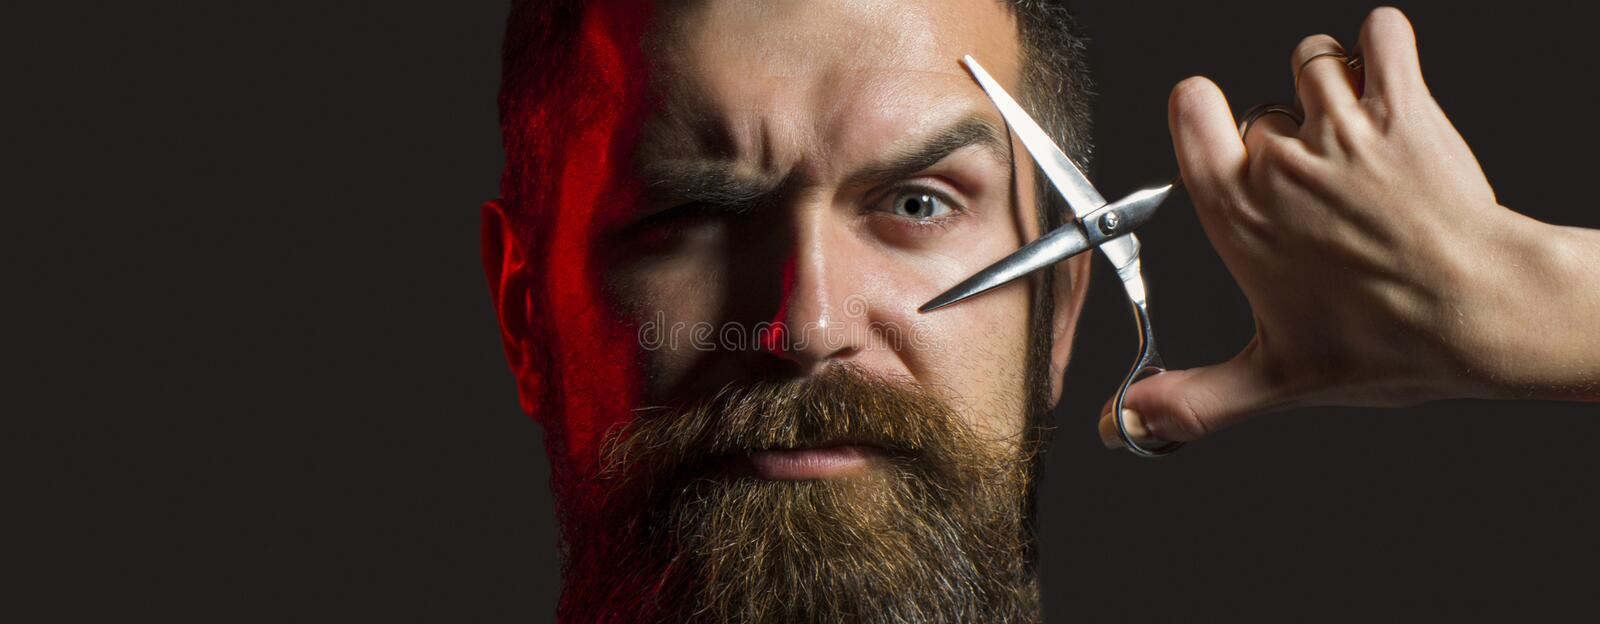 Bearded man, long beard, brutal, with moustache, haircut. Barber scissors. Mens haircut. Handsome bearded. Barbershop. Long beard Vintage barbershop shaving royalty free stock photo